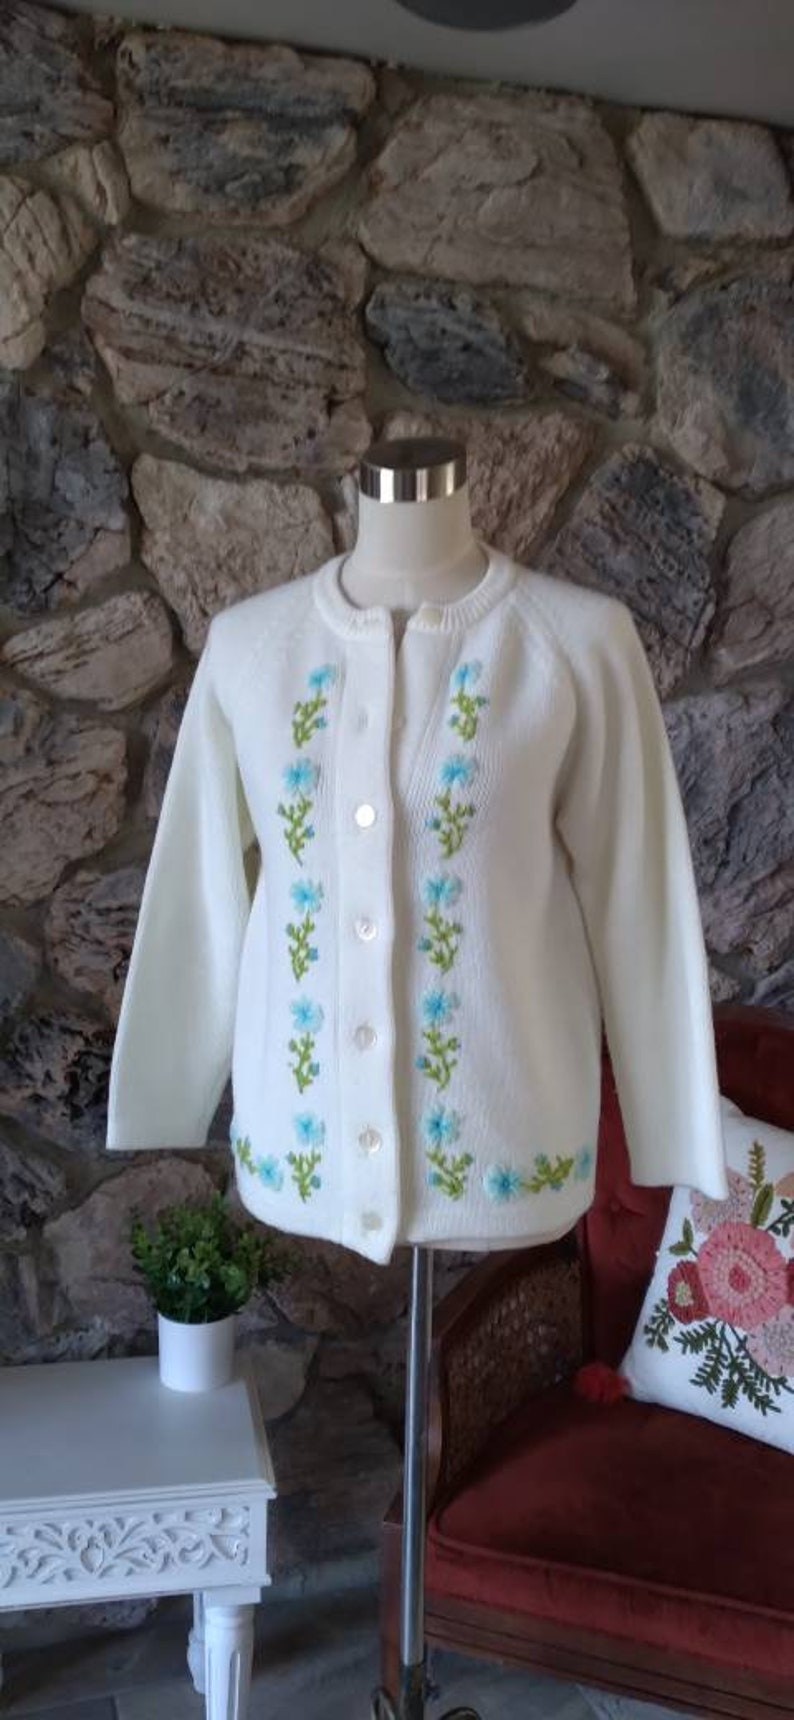 Vintage White Knit Cardigan with Embroidery38 Bust50s 60s Sweater50s Cardigan MEDIUMKnit Sweater 1950smed